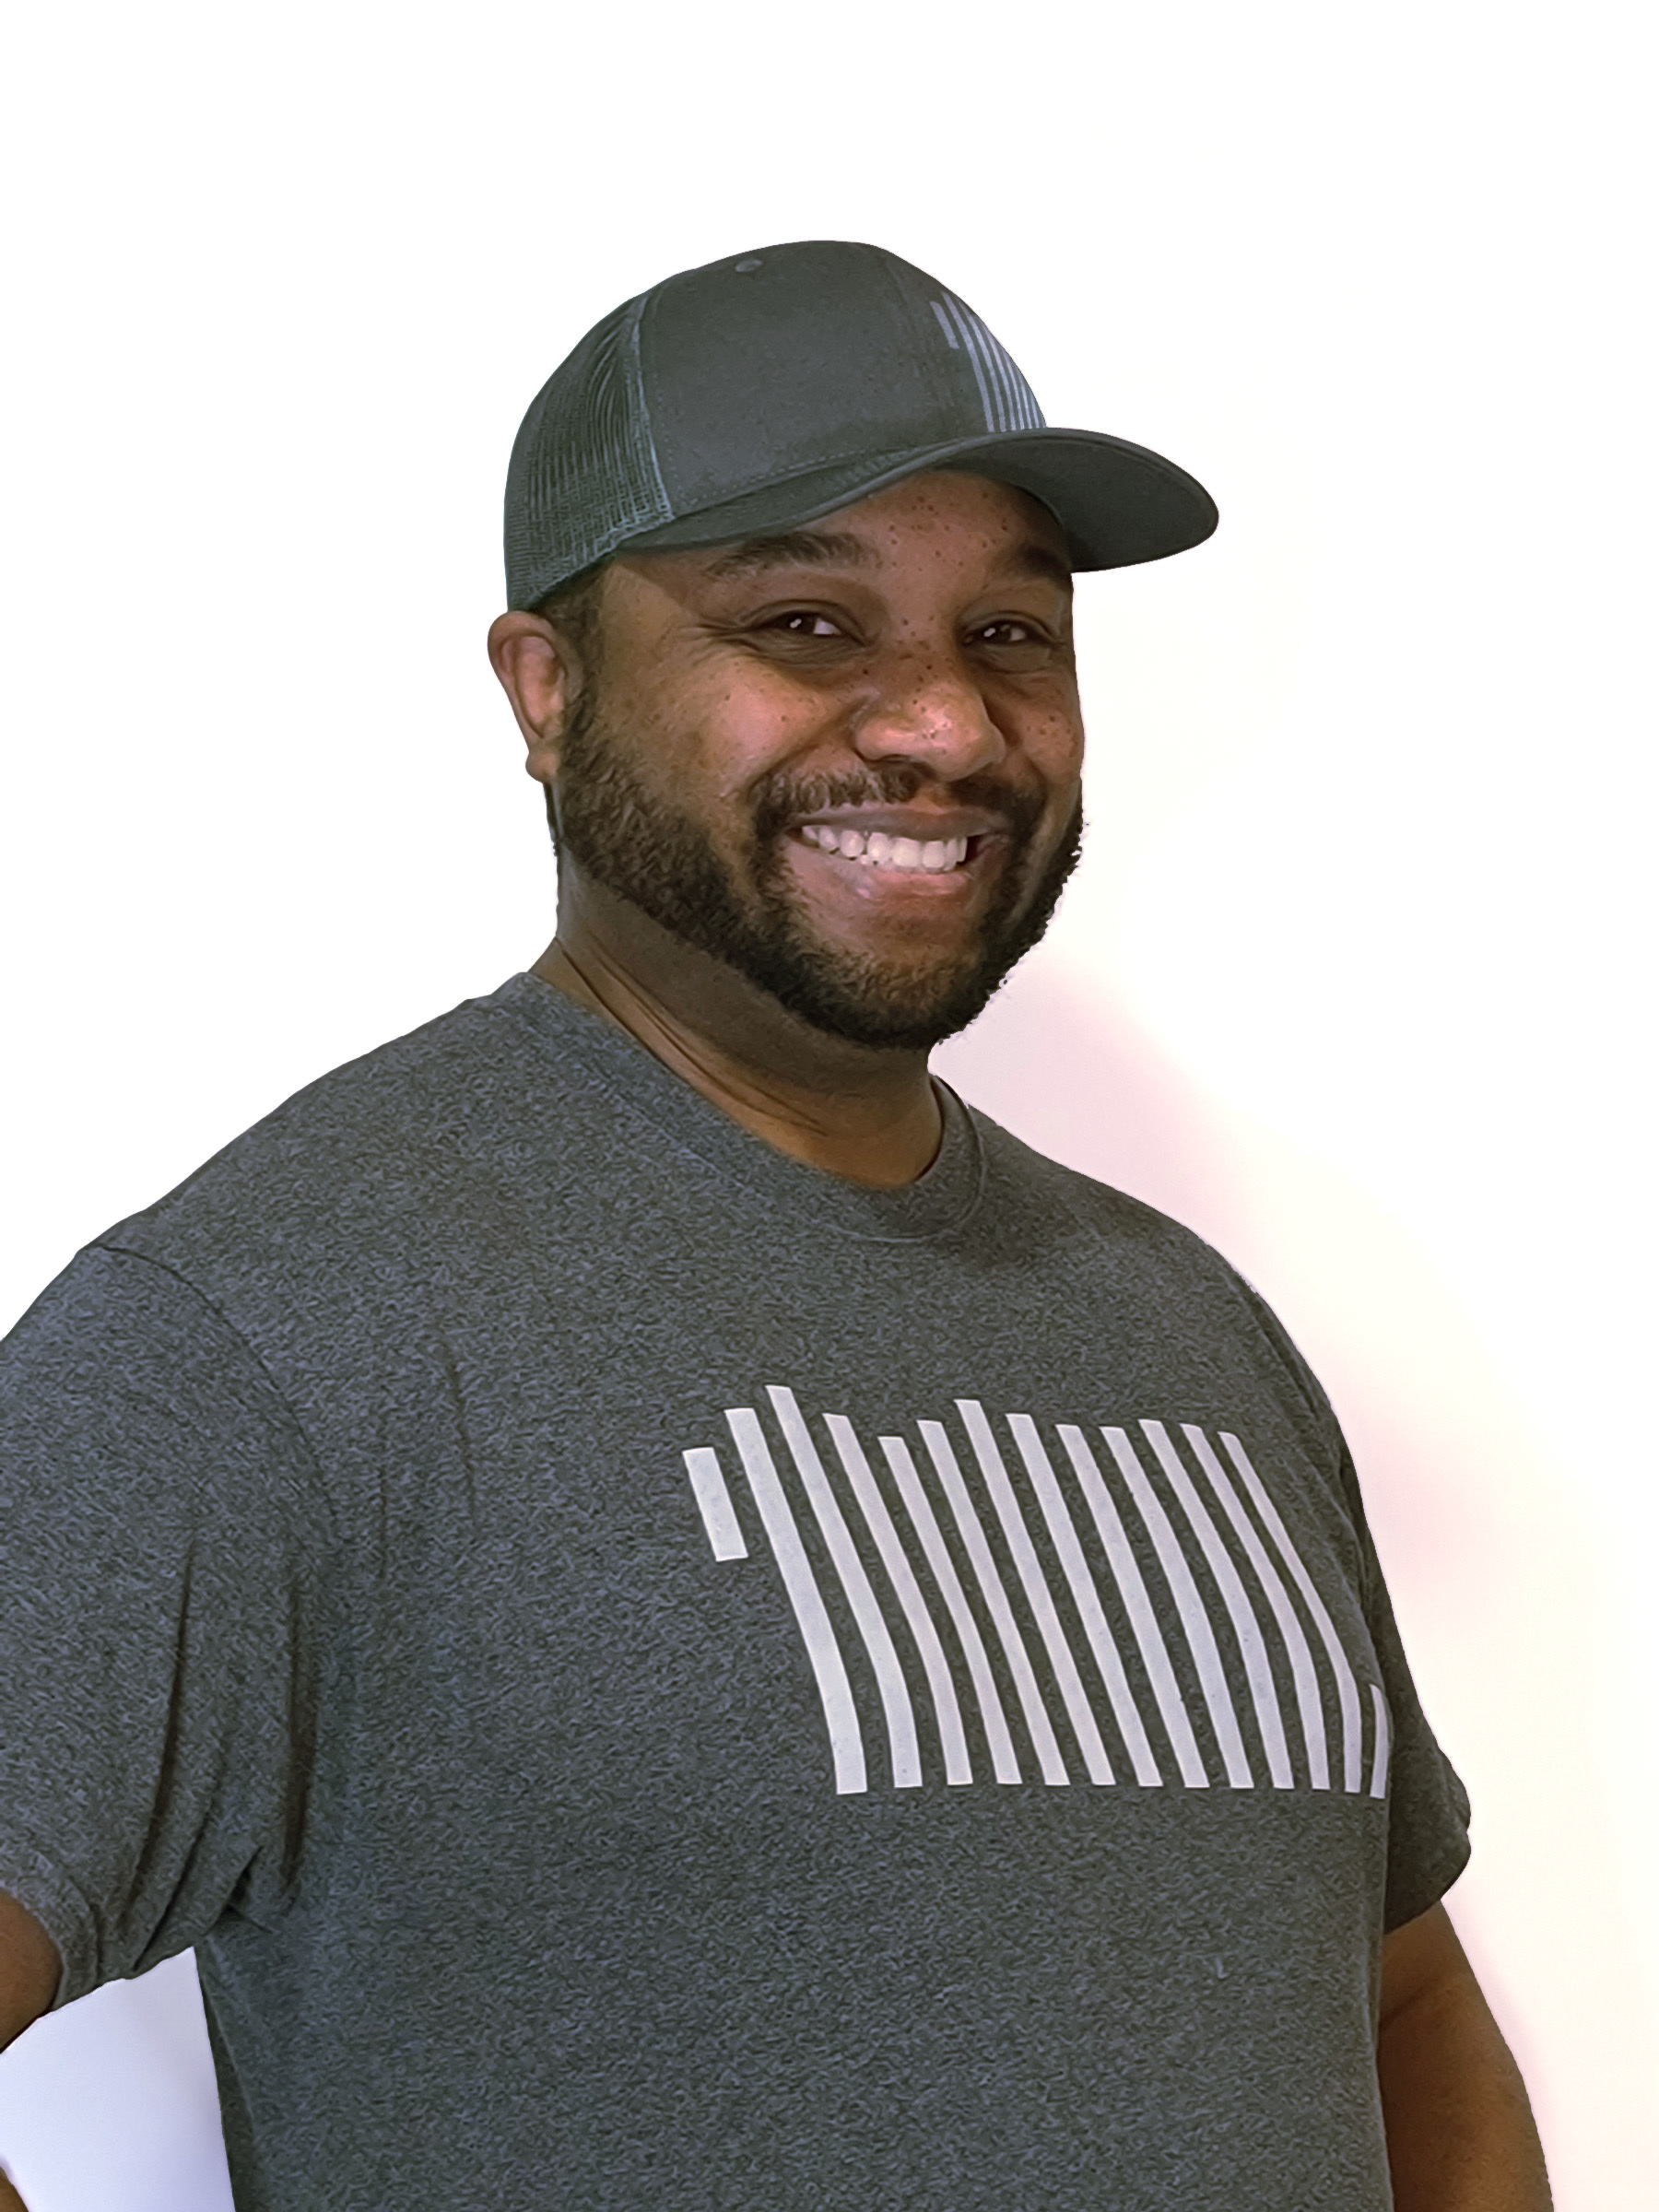 A person with a gray baseball cap and graphic T-shirt smiles at the camera